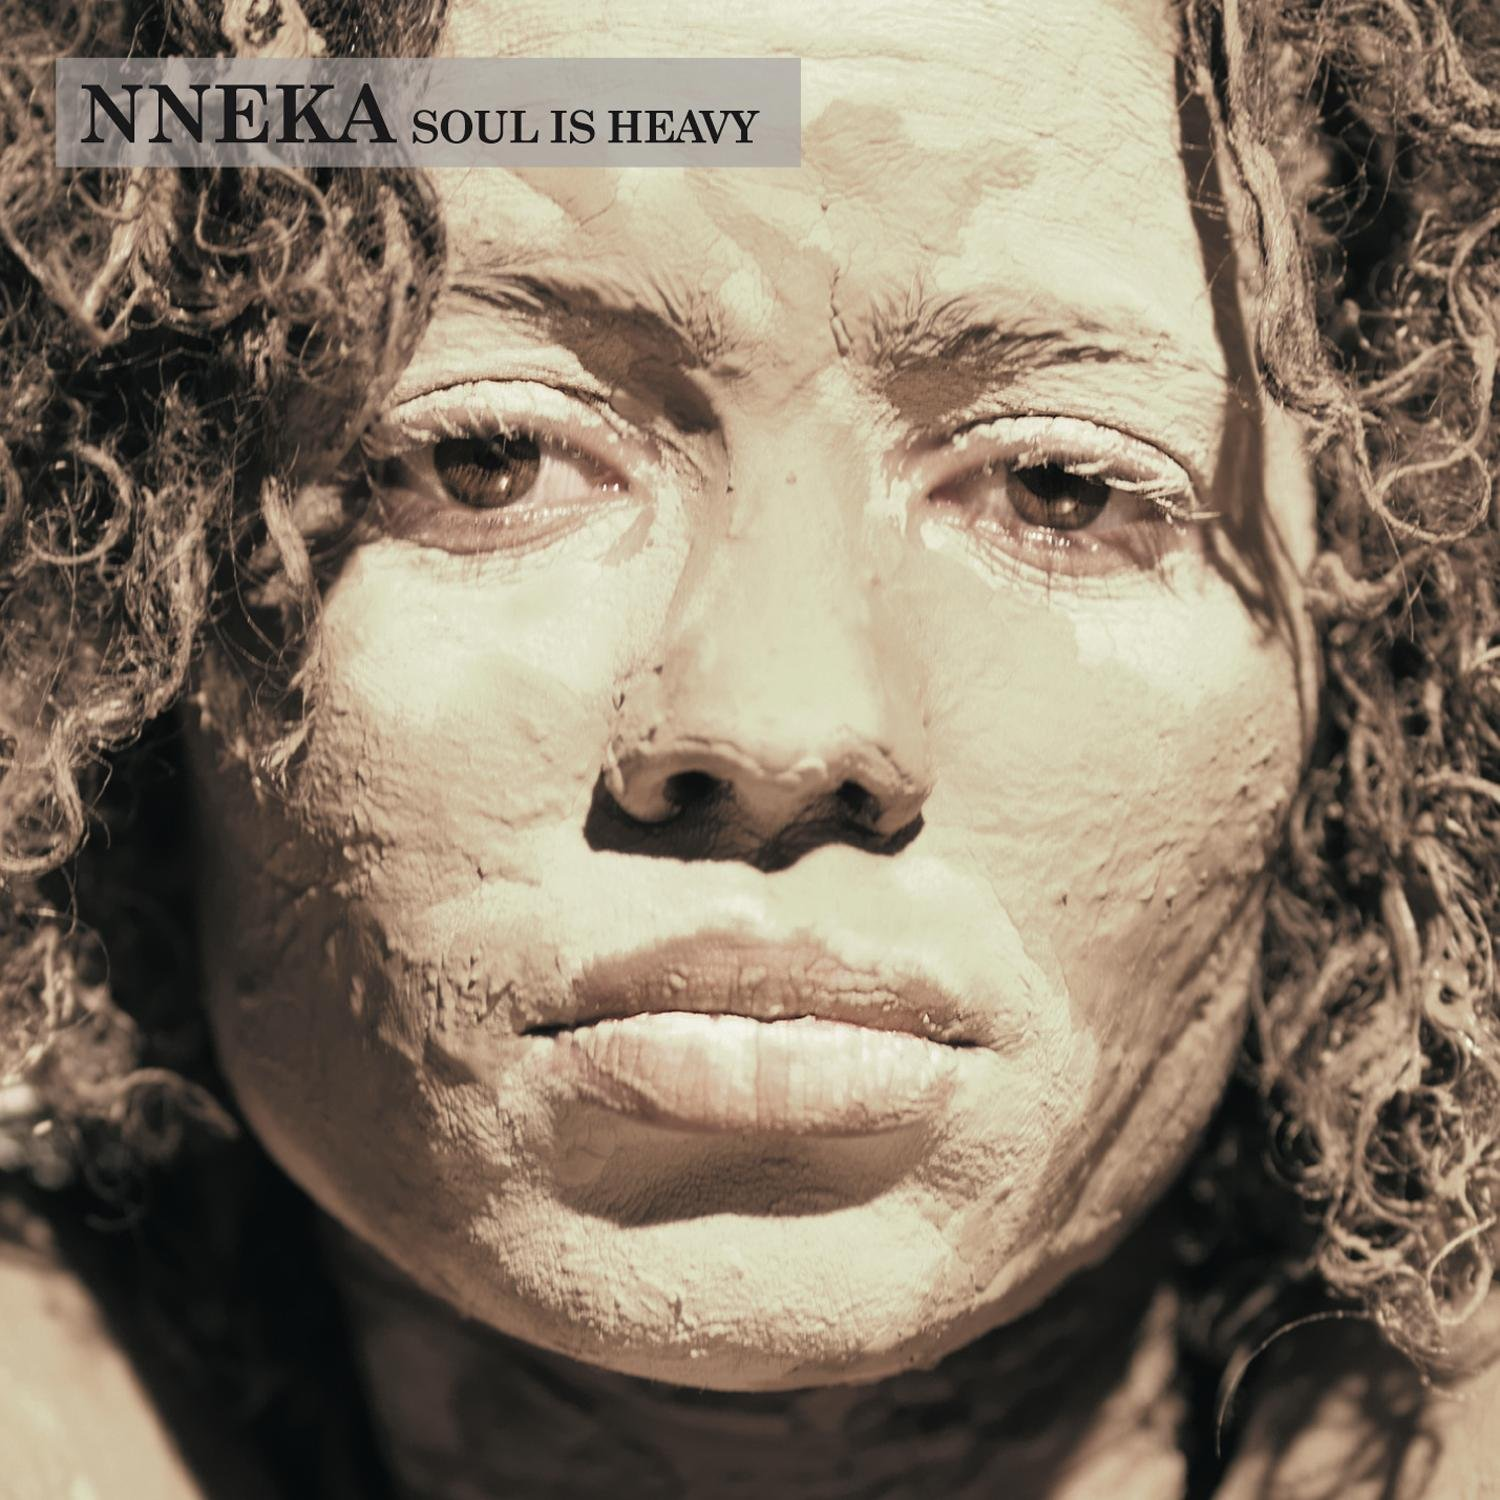 NNEKA IS SOUL GRATUITEMENT HEAVY TÉLÉCHARGER ALBUM